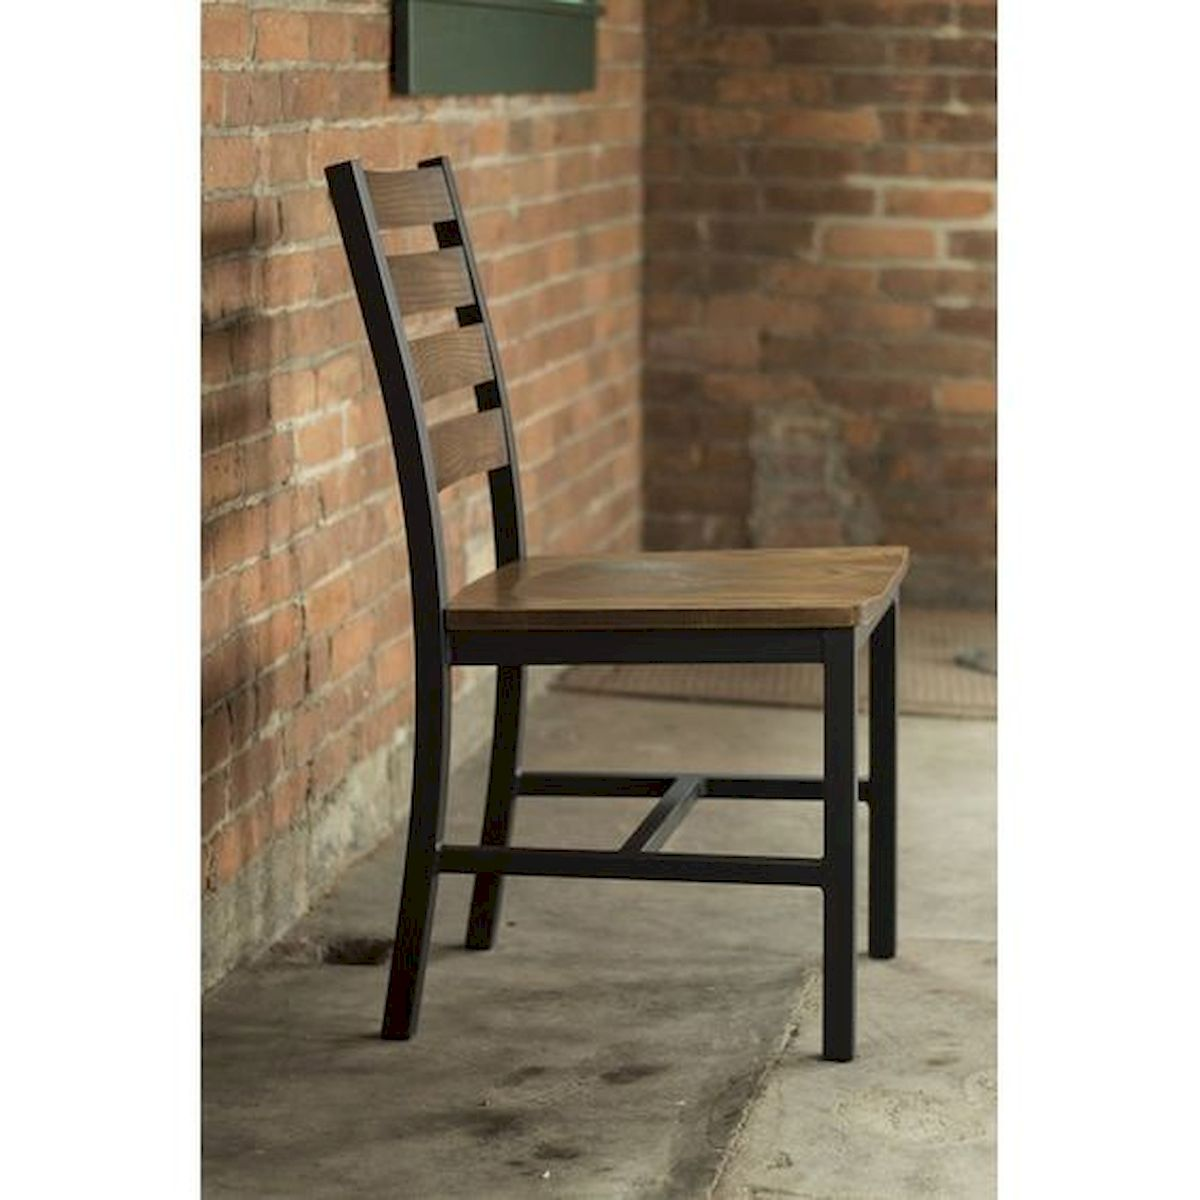 The Best Choice of Farmhouse Chairs (19)